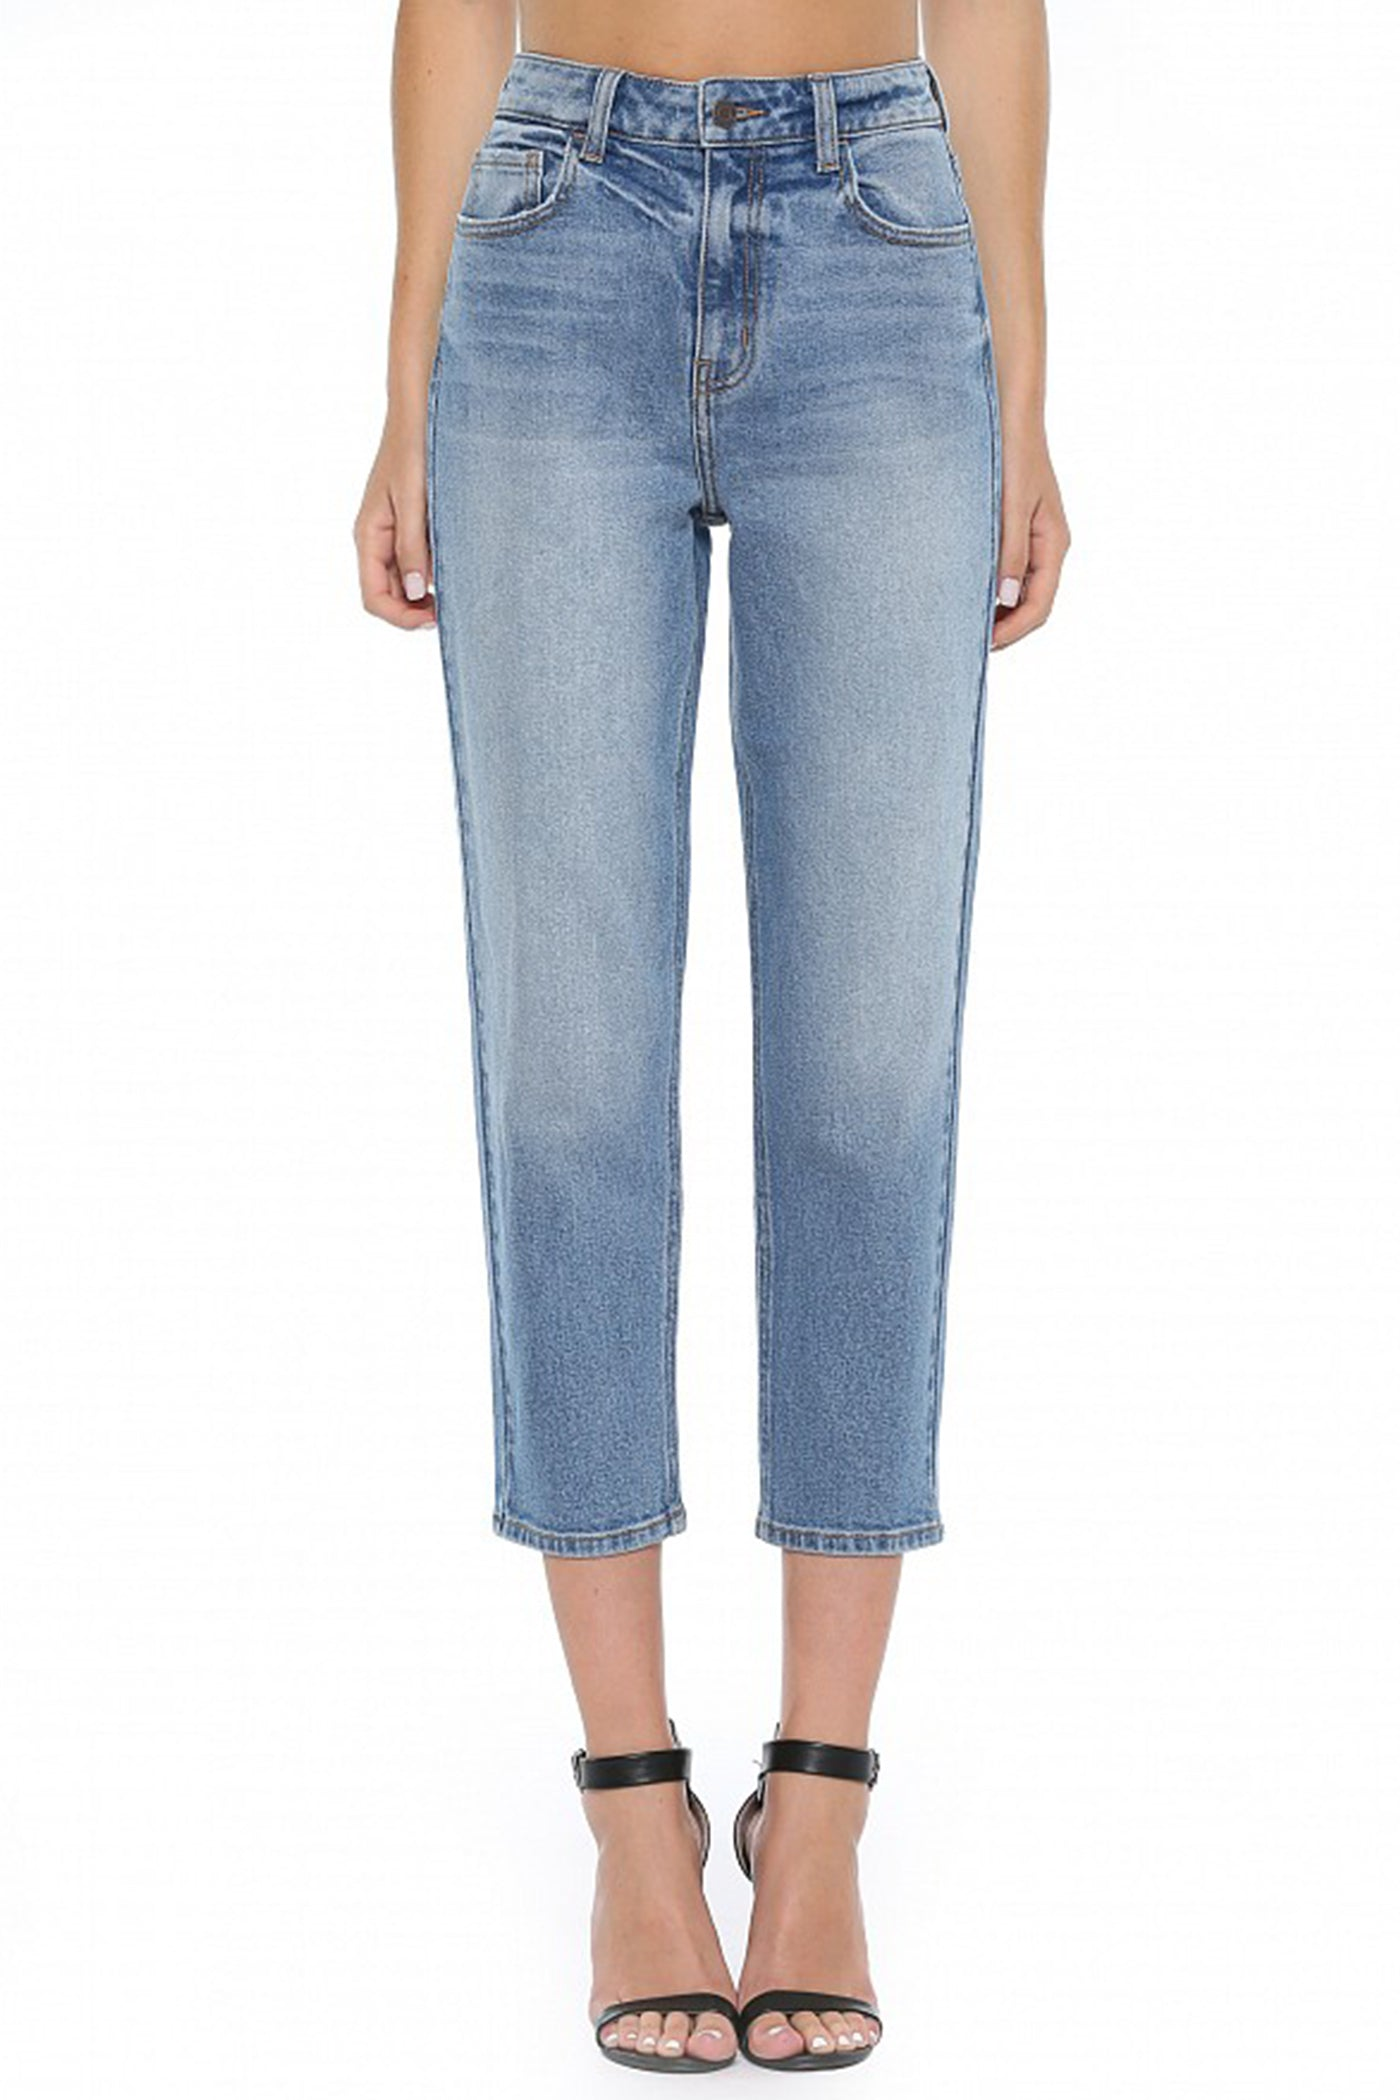 Southern Summer Jeans